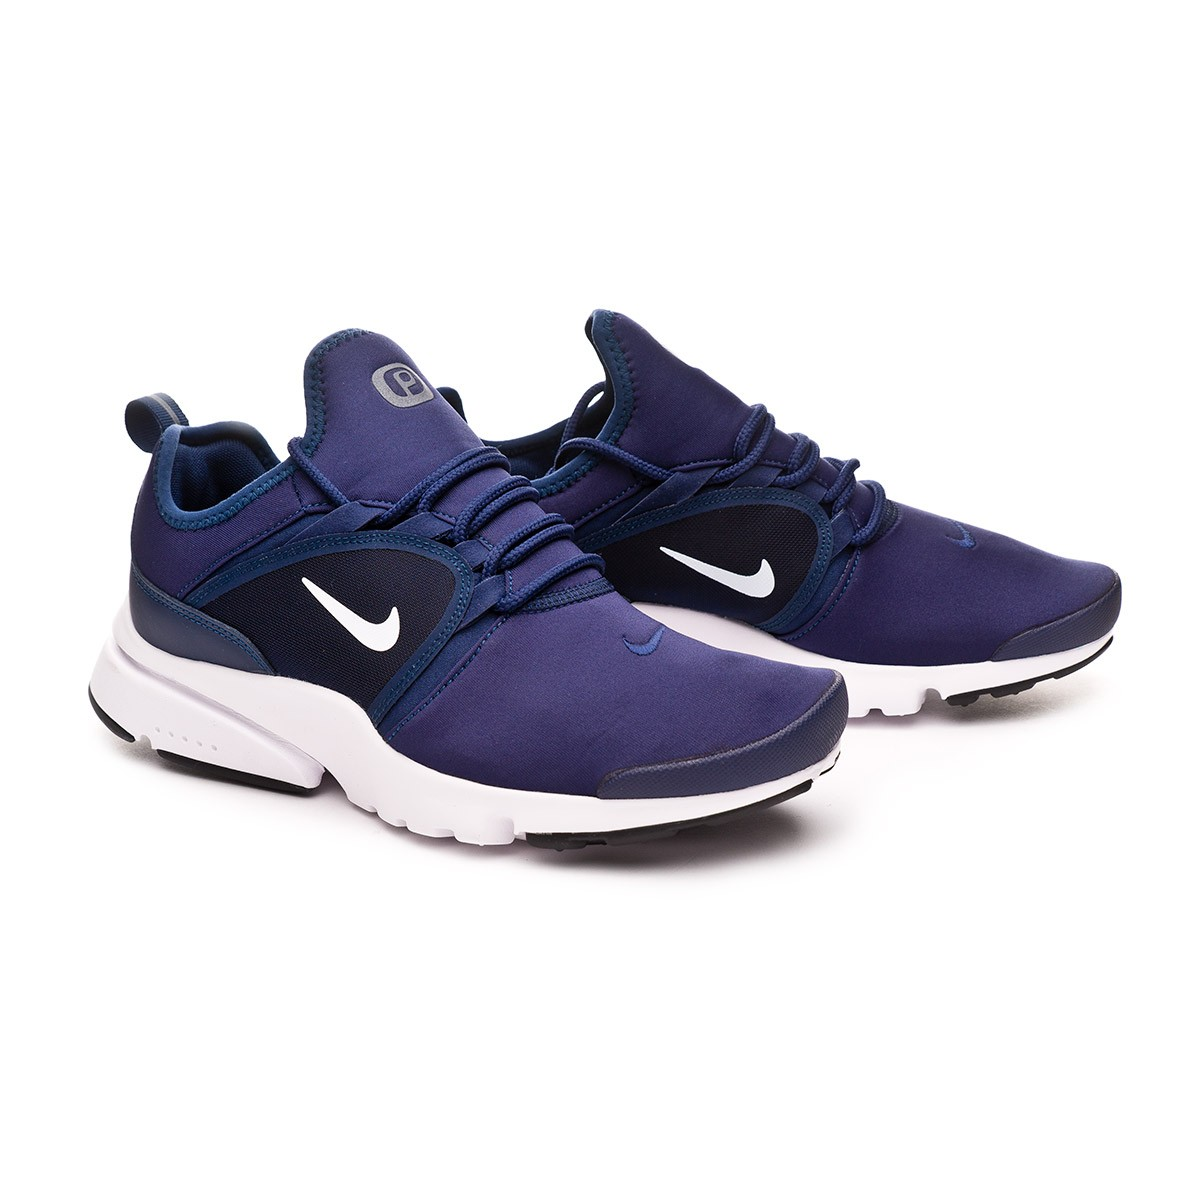 881d177510 Zapatilla Nike Presto Fly World 2019 Mifnight navy-White-Black - Tienda de  fútbol Fútbol Emotion